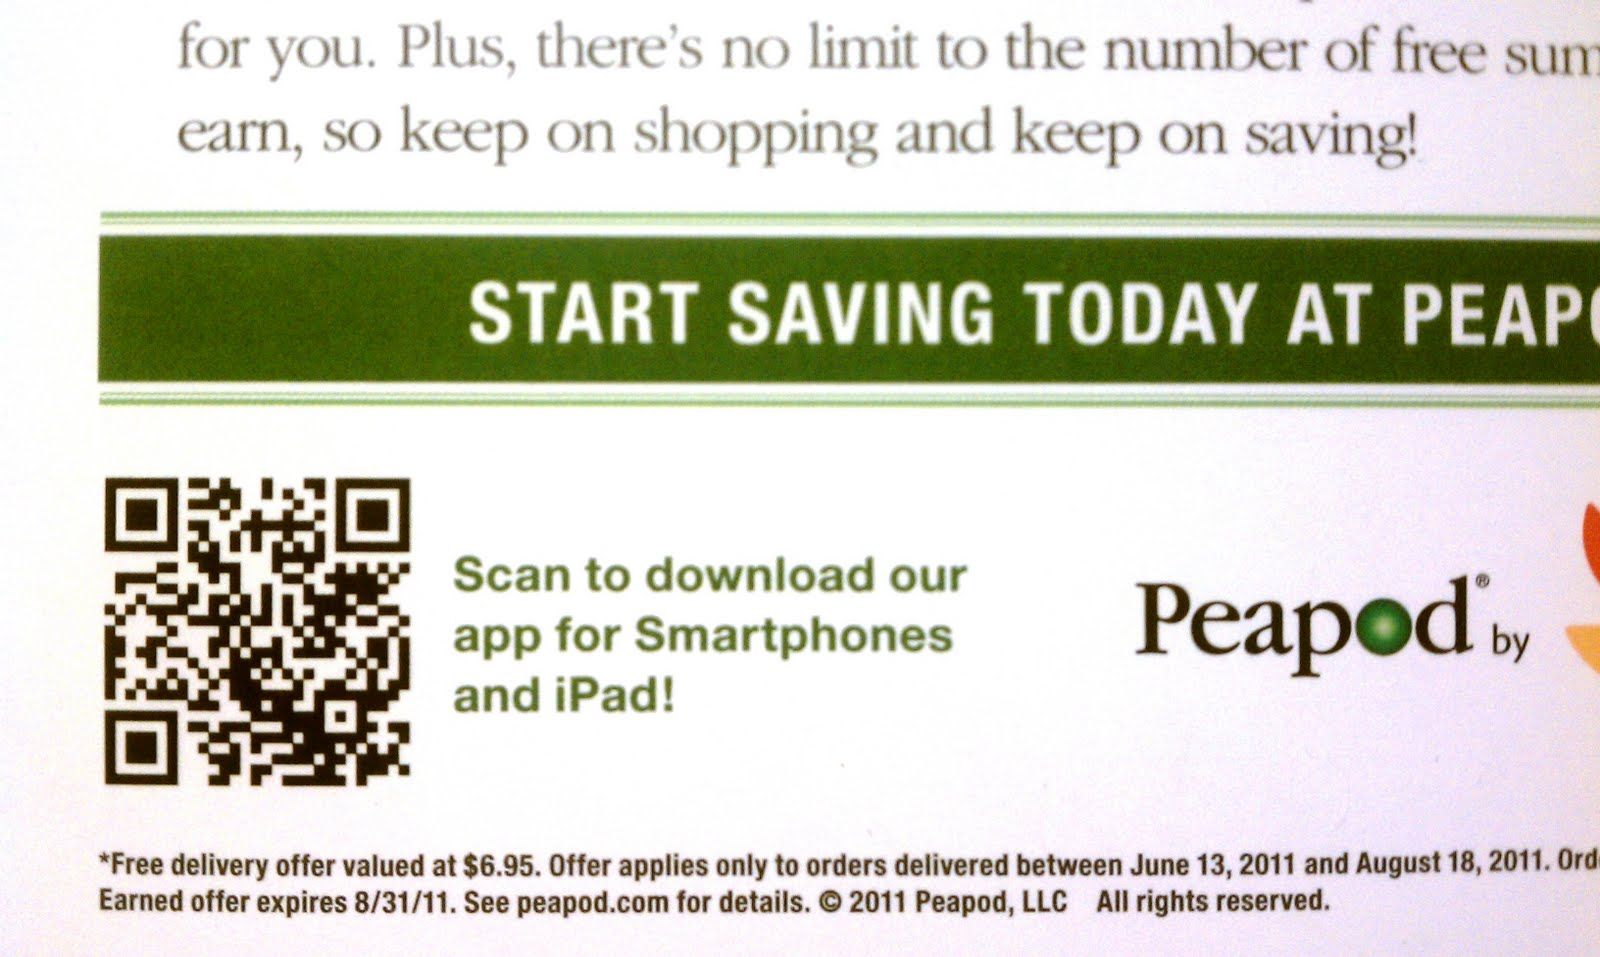 Trending Now: Save More At Peapod With 61 Coupons, Promo Codes, & Deals from Giving Assistant. Save Money With % Top Verified Coupons & Support Good Causes Automatically.